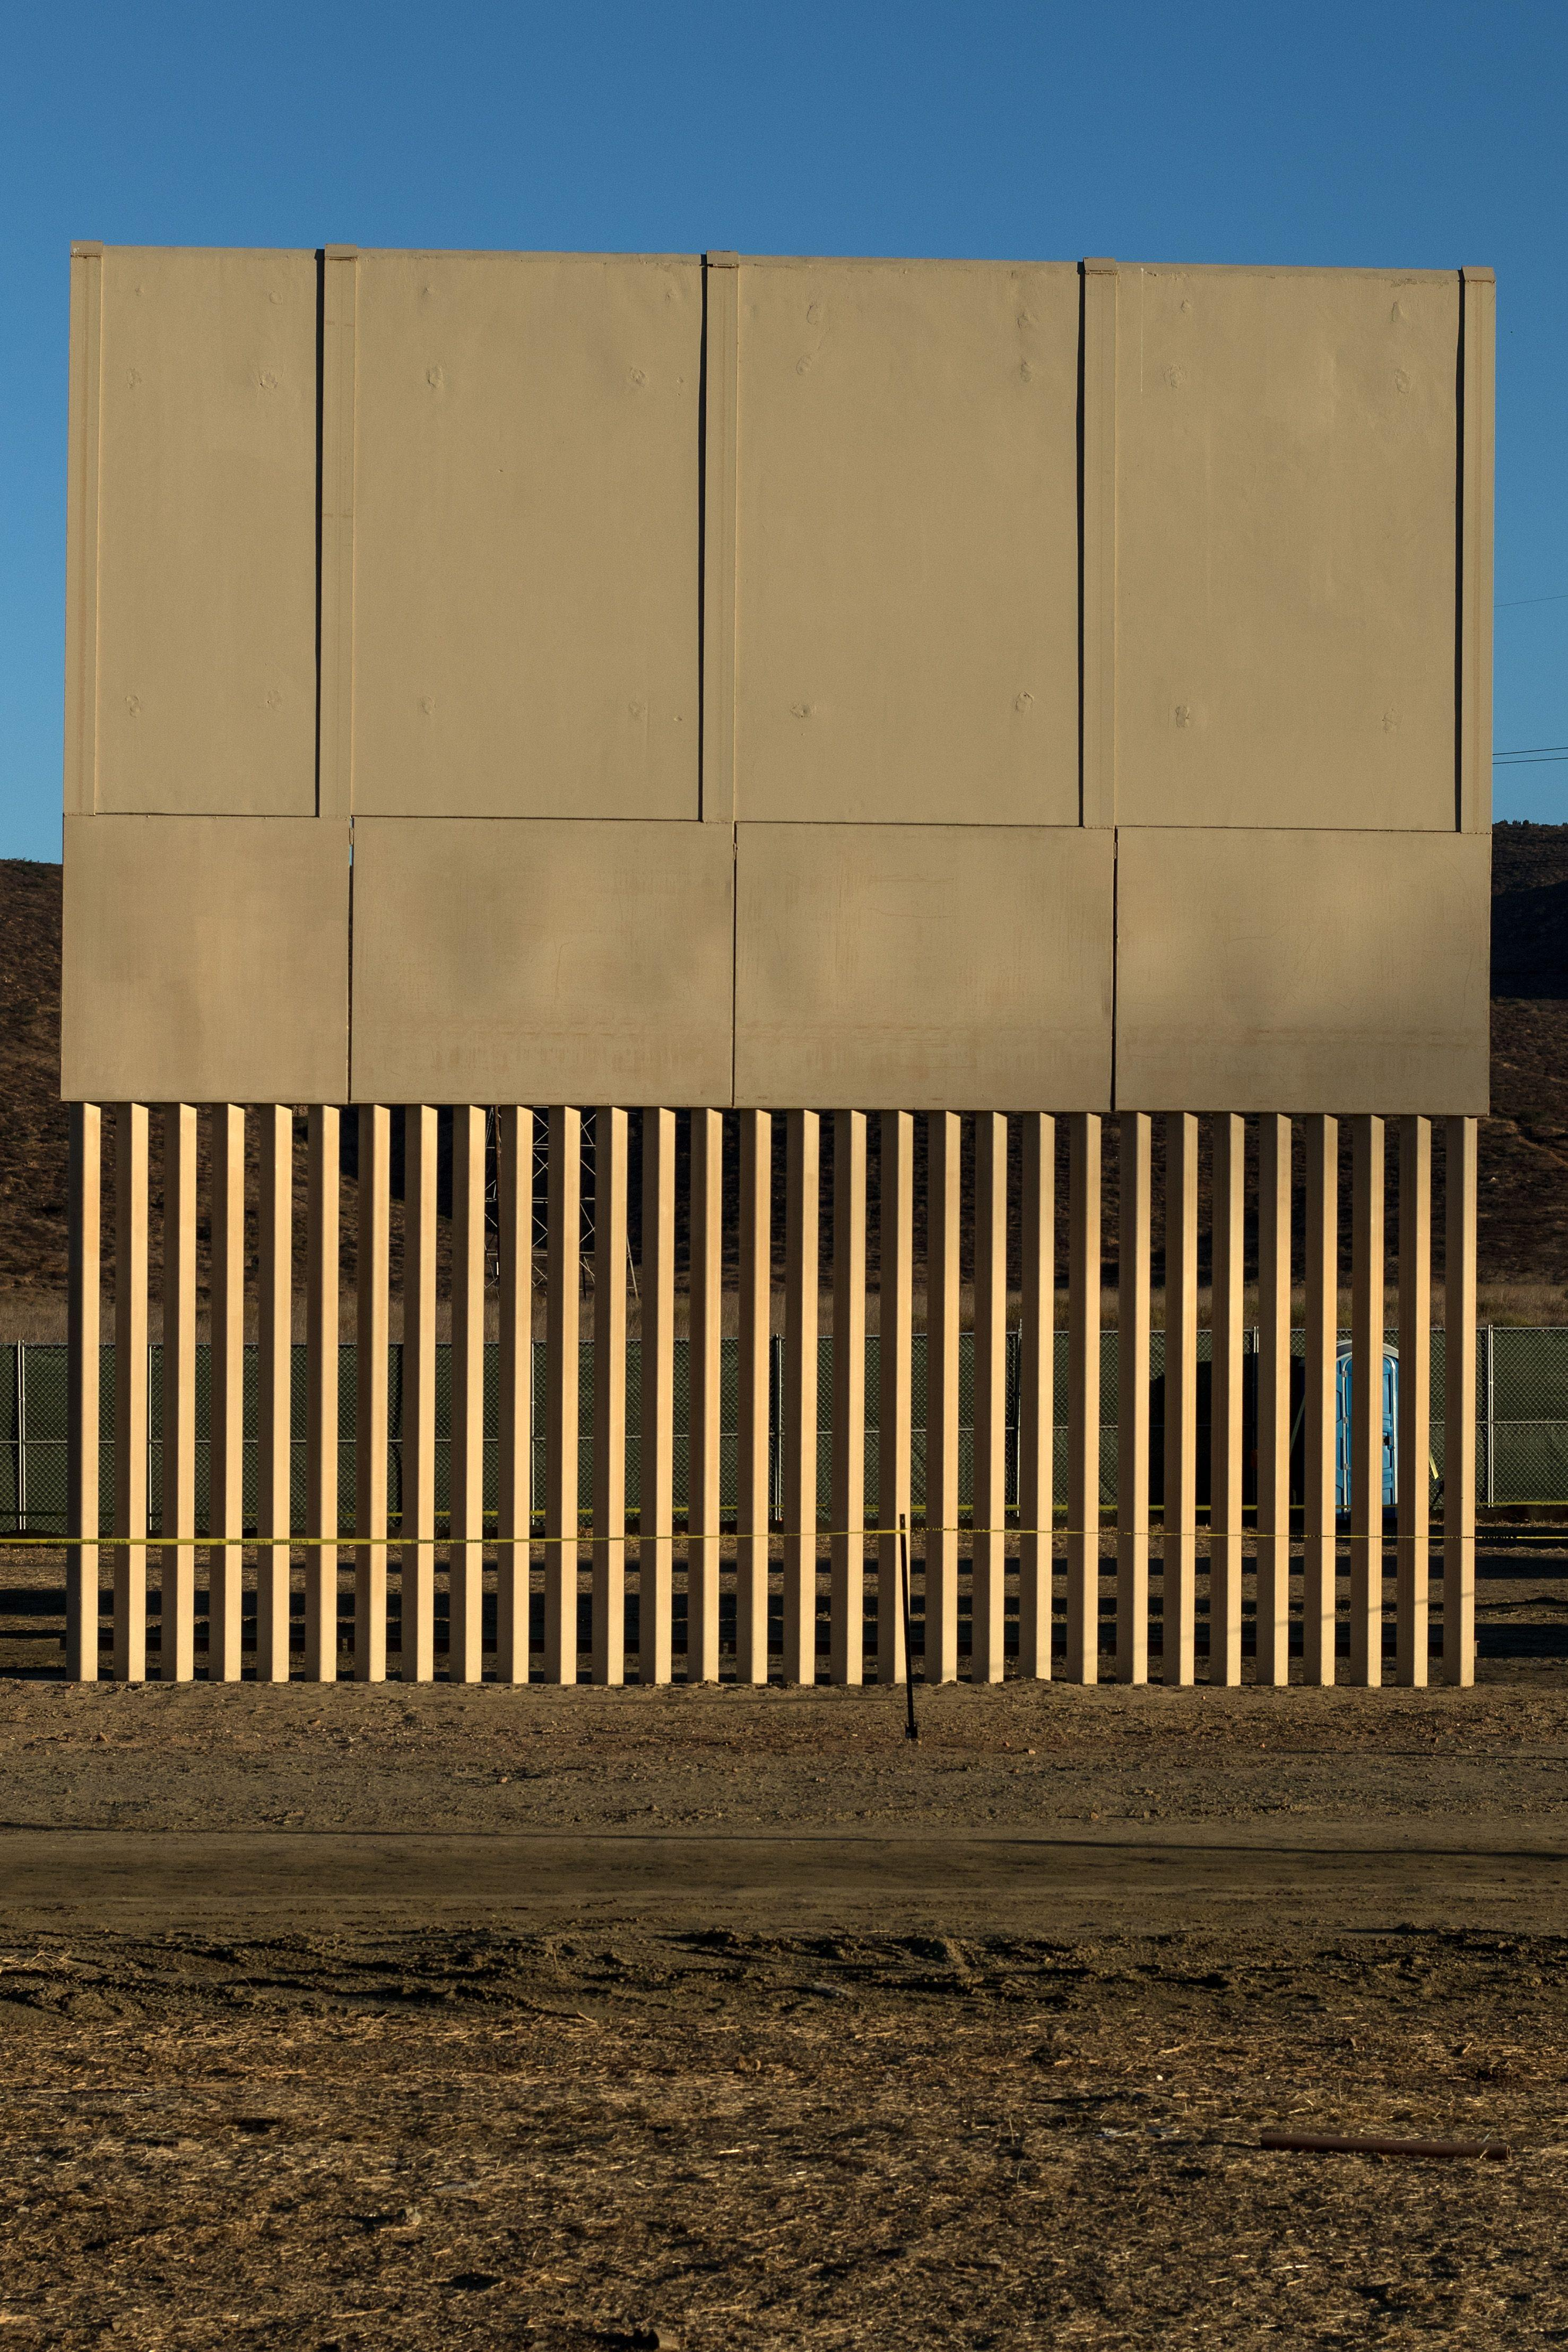 Each prototype wall costs up to £370,000 (Picture: Getty)